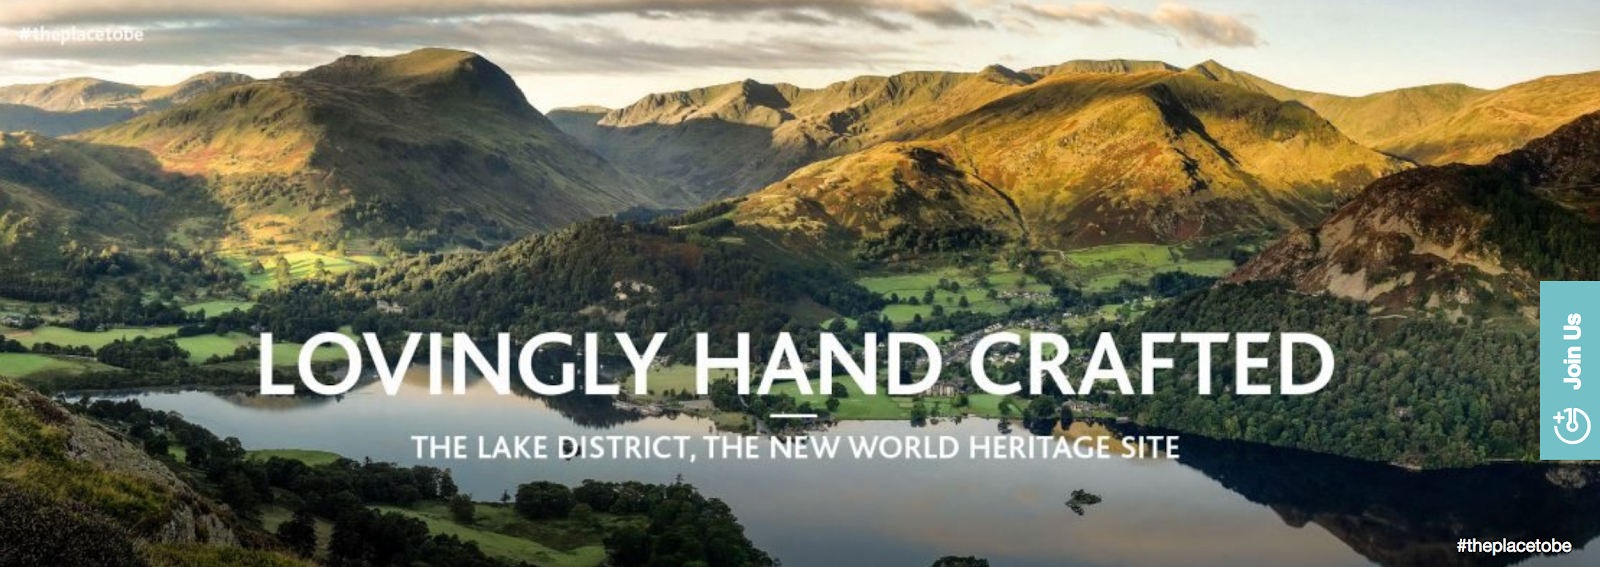 Hand-crafted Lake District Getaway - Cumbria Tourism